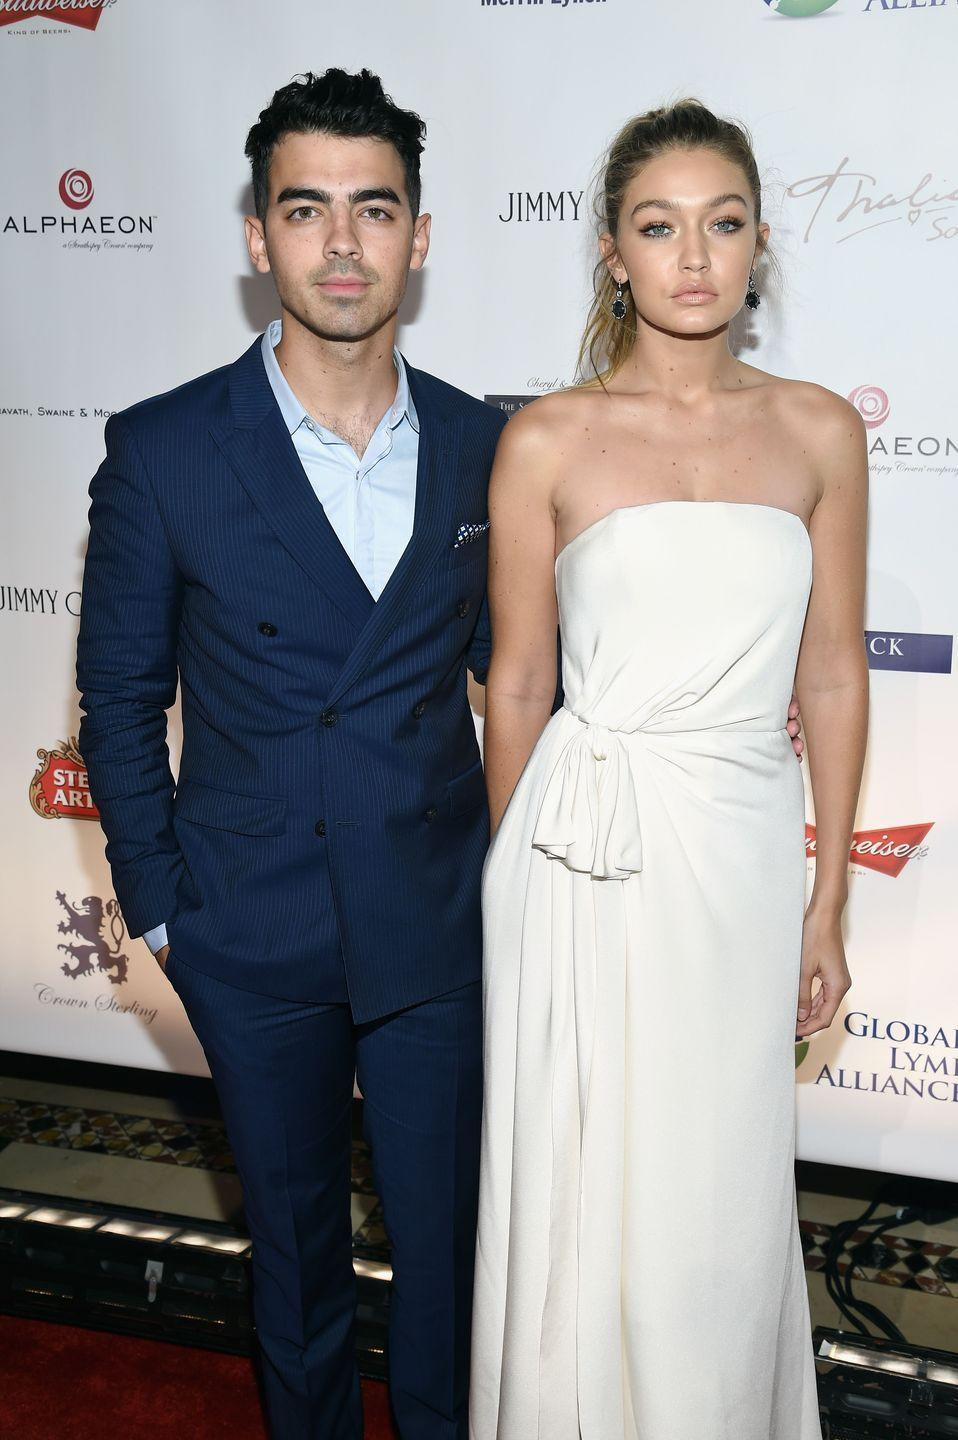 "<p><a href=""https://www.cosmopolitan.com/entertainment/celebs/news/a50032/zayn-malik-gigi-hadid-hold-hands-joe-jonas-unfollows/"" rel=""nofollow noopener"" target=""_blank"" data-ylk=""slk:Months after deleting a #squad photo"" class=""link rapid-noclick-resp"">Months after deleting a #squad photo</a> of himself, Zayn, and Kanye West at Paris Fashion Week on Instagram, Joe got candid about his ex Gigi and her boyfriend Zayn in an interview with <em><a href=""http://metro.co.uk/2016/04/24/joe-jonas-throws-shade-at-gigi-hadid-and-zayn-malik-it-was-very-quick-5837418/"" rel=""nofollow noopener"" target=""_blank"" data-ylk=""slk:The Daily Mirror"" class=""link rapid-noclick-resp"">The Daily Mirror</a></em>: ""I think it's interesting that she moved on so quickly, I mean it was definitely quick."" Ouch.</p>"